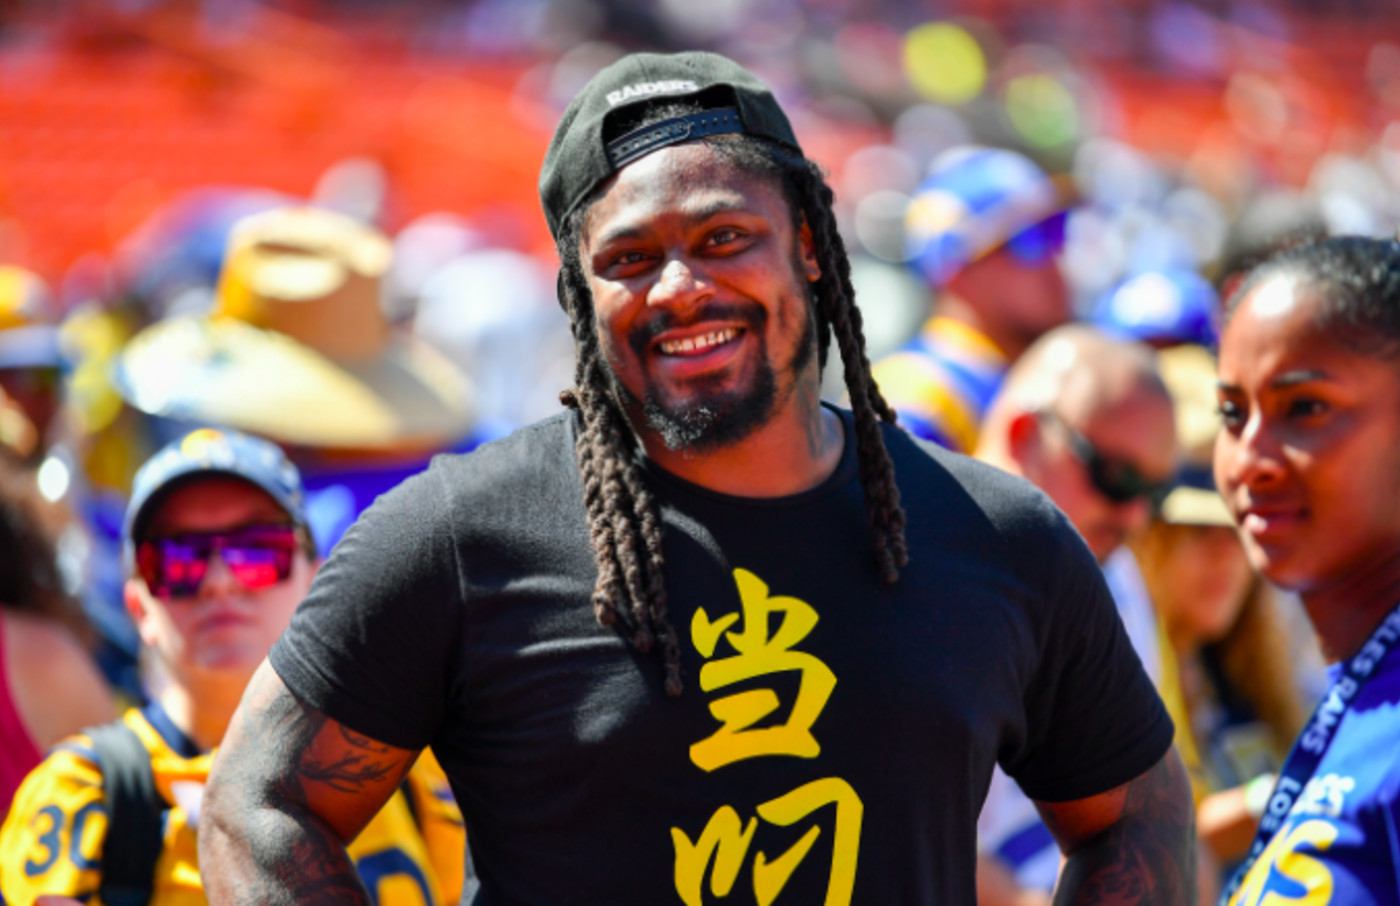 Retired NFL footballer Marshawn Lynch